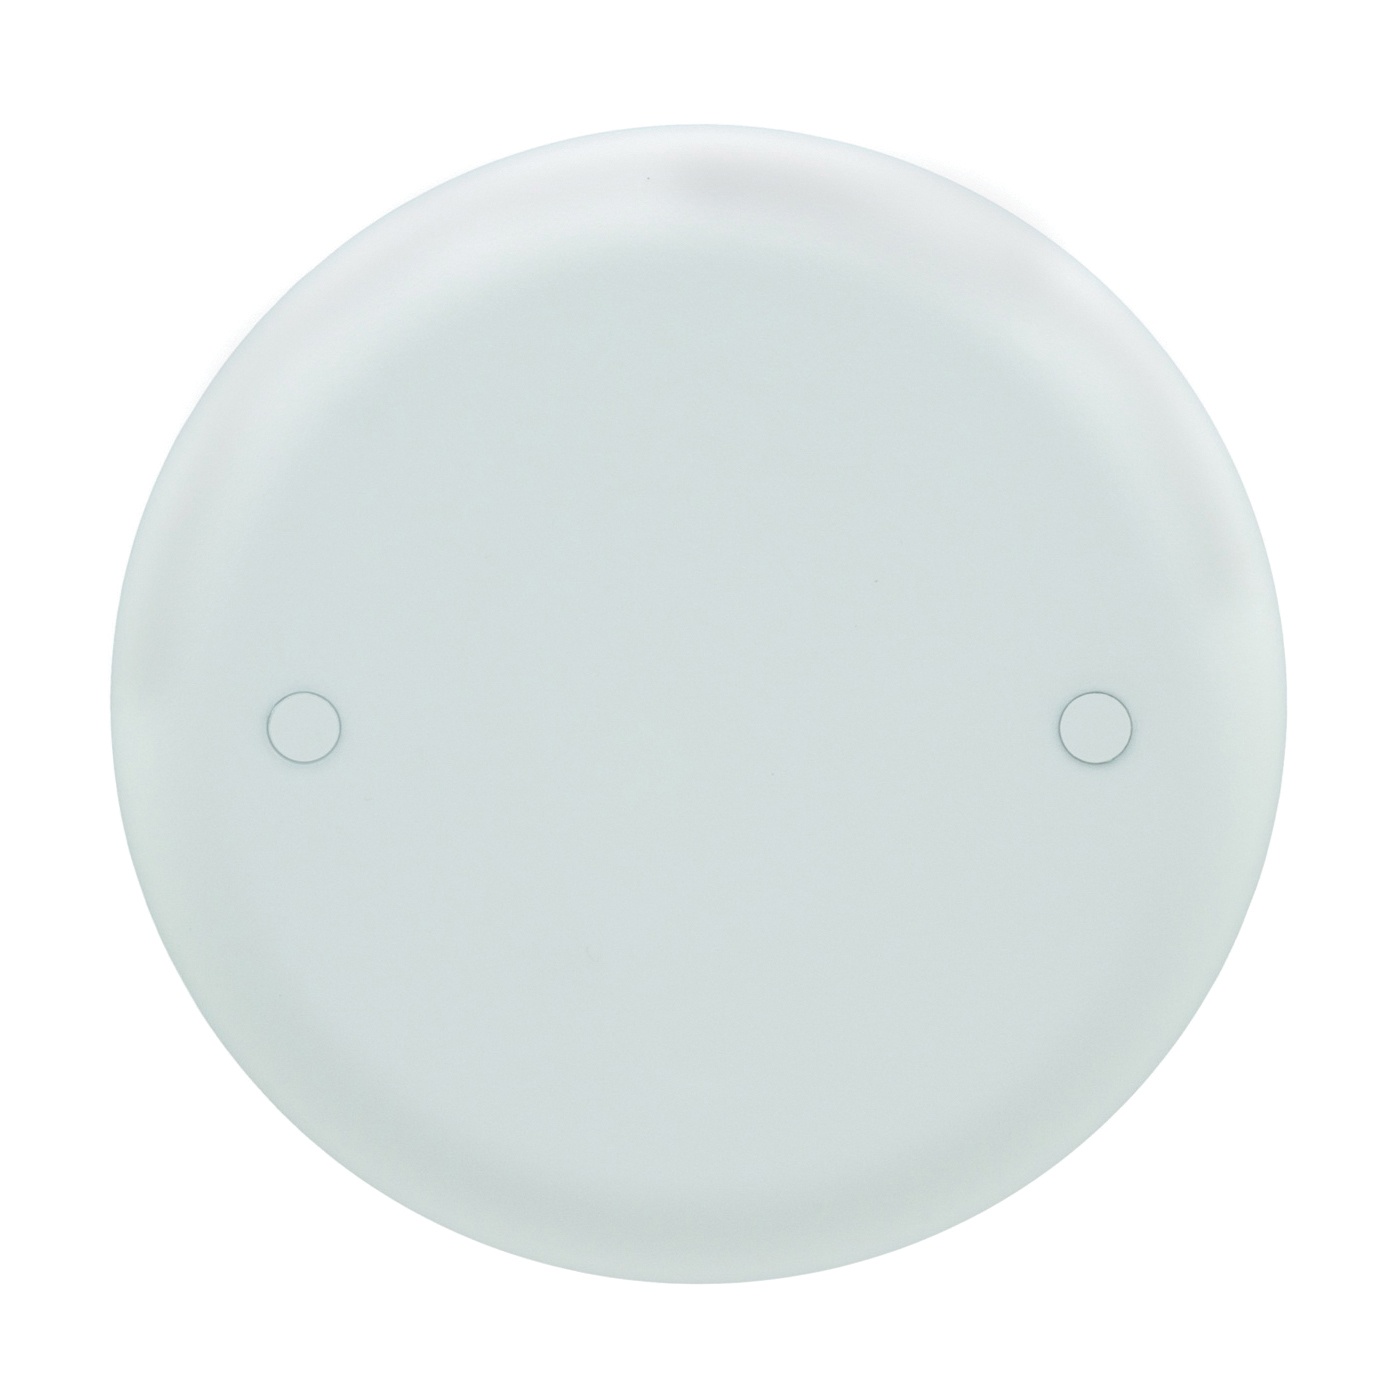 Picture of Carlon CPC4WH Ceiling Box Cover, 4 in Dia, Round, Lexan, White